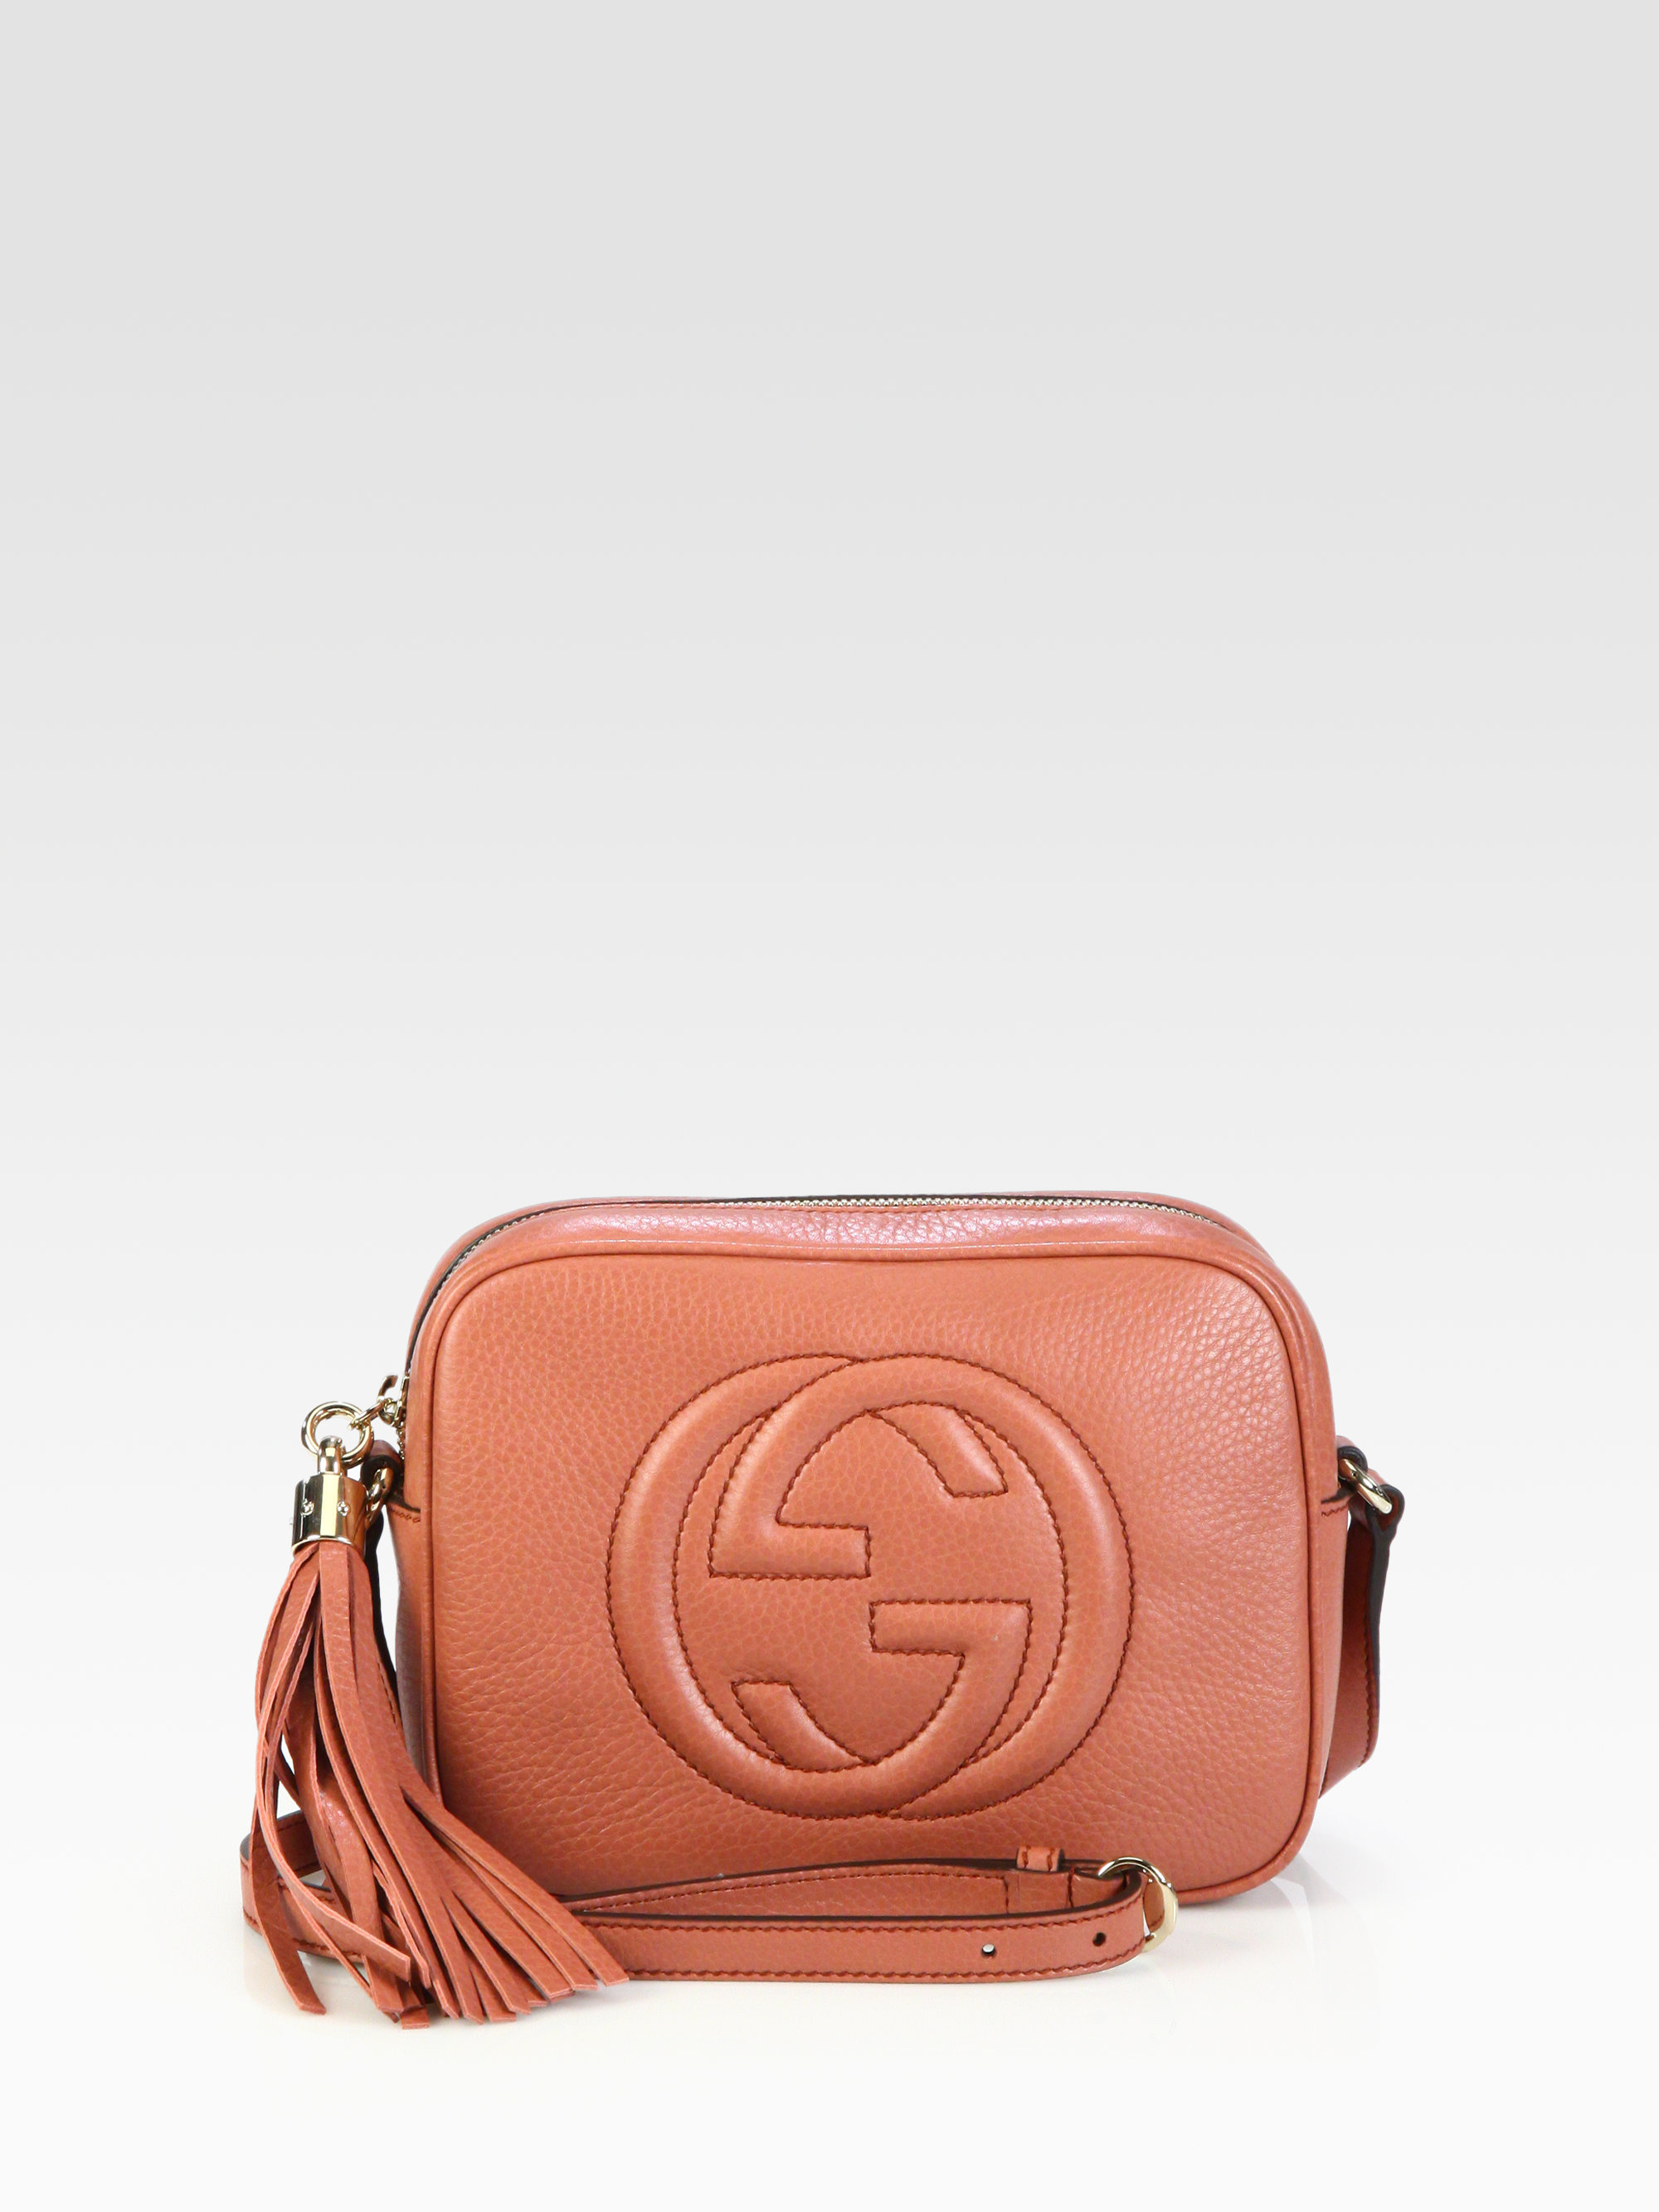 acbe4ee553e9 Gucci Soho Disco Leather Shoulder Bag in Pink - Lyst